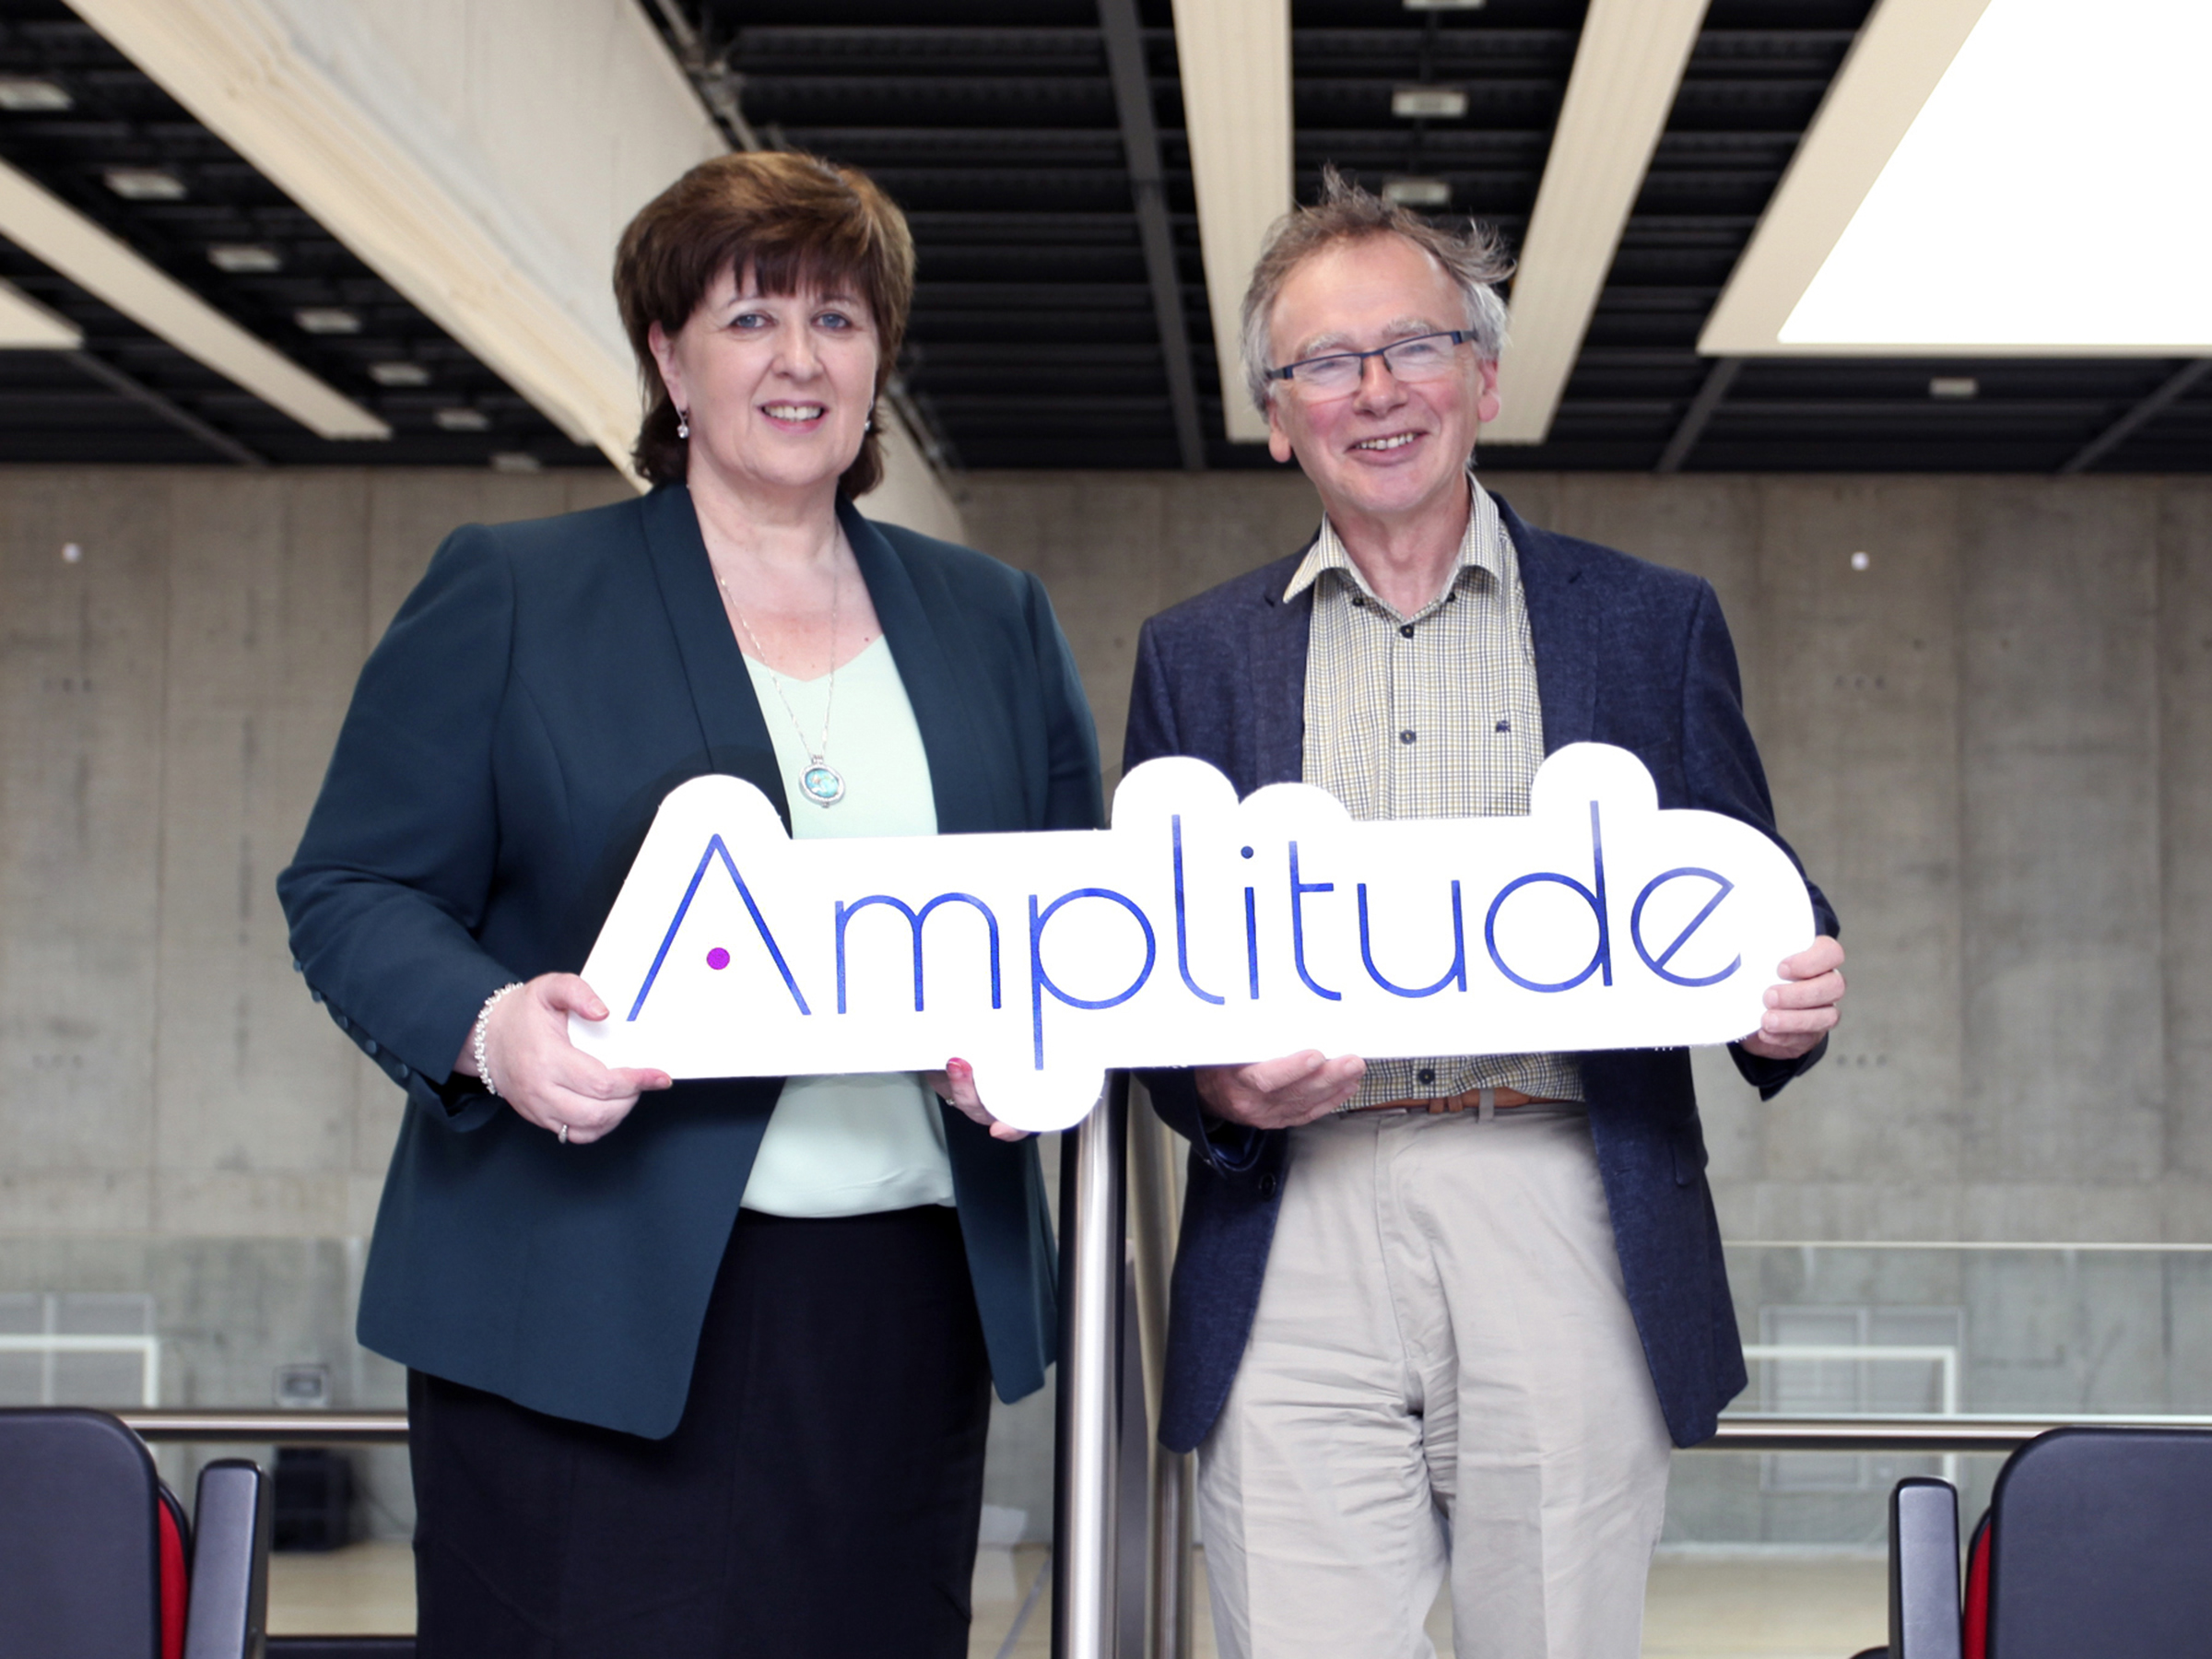 Pictured launching the Amplitude conference at the WIT Arena are Dr Patricia Mulcahy, President IT Carlow and Prof Willie Donnelly, President WIT.